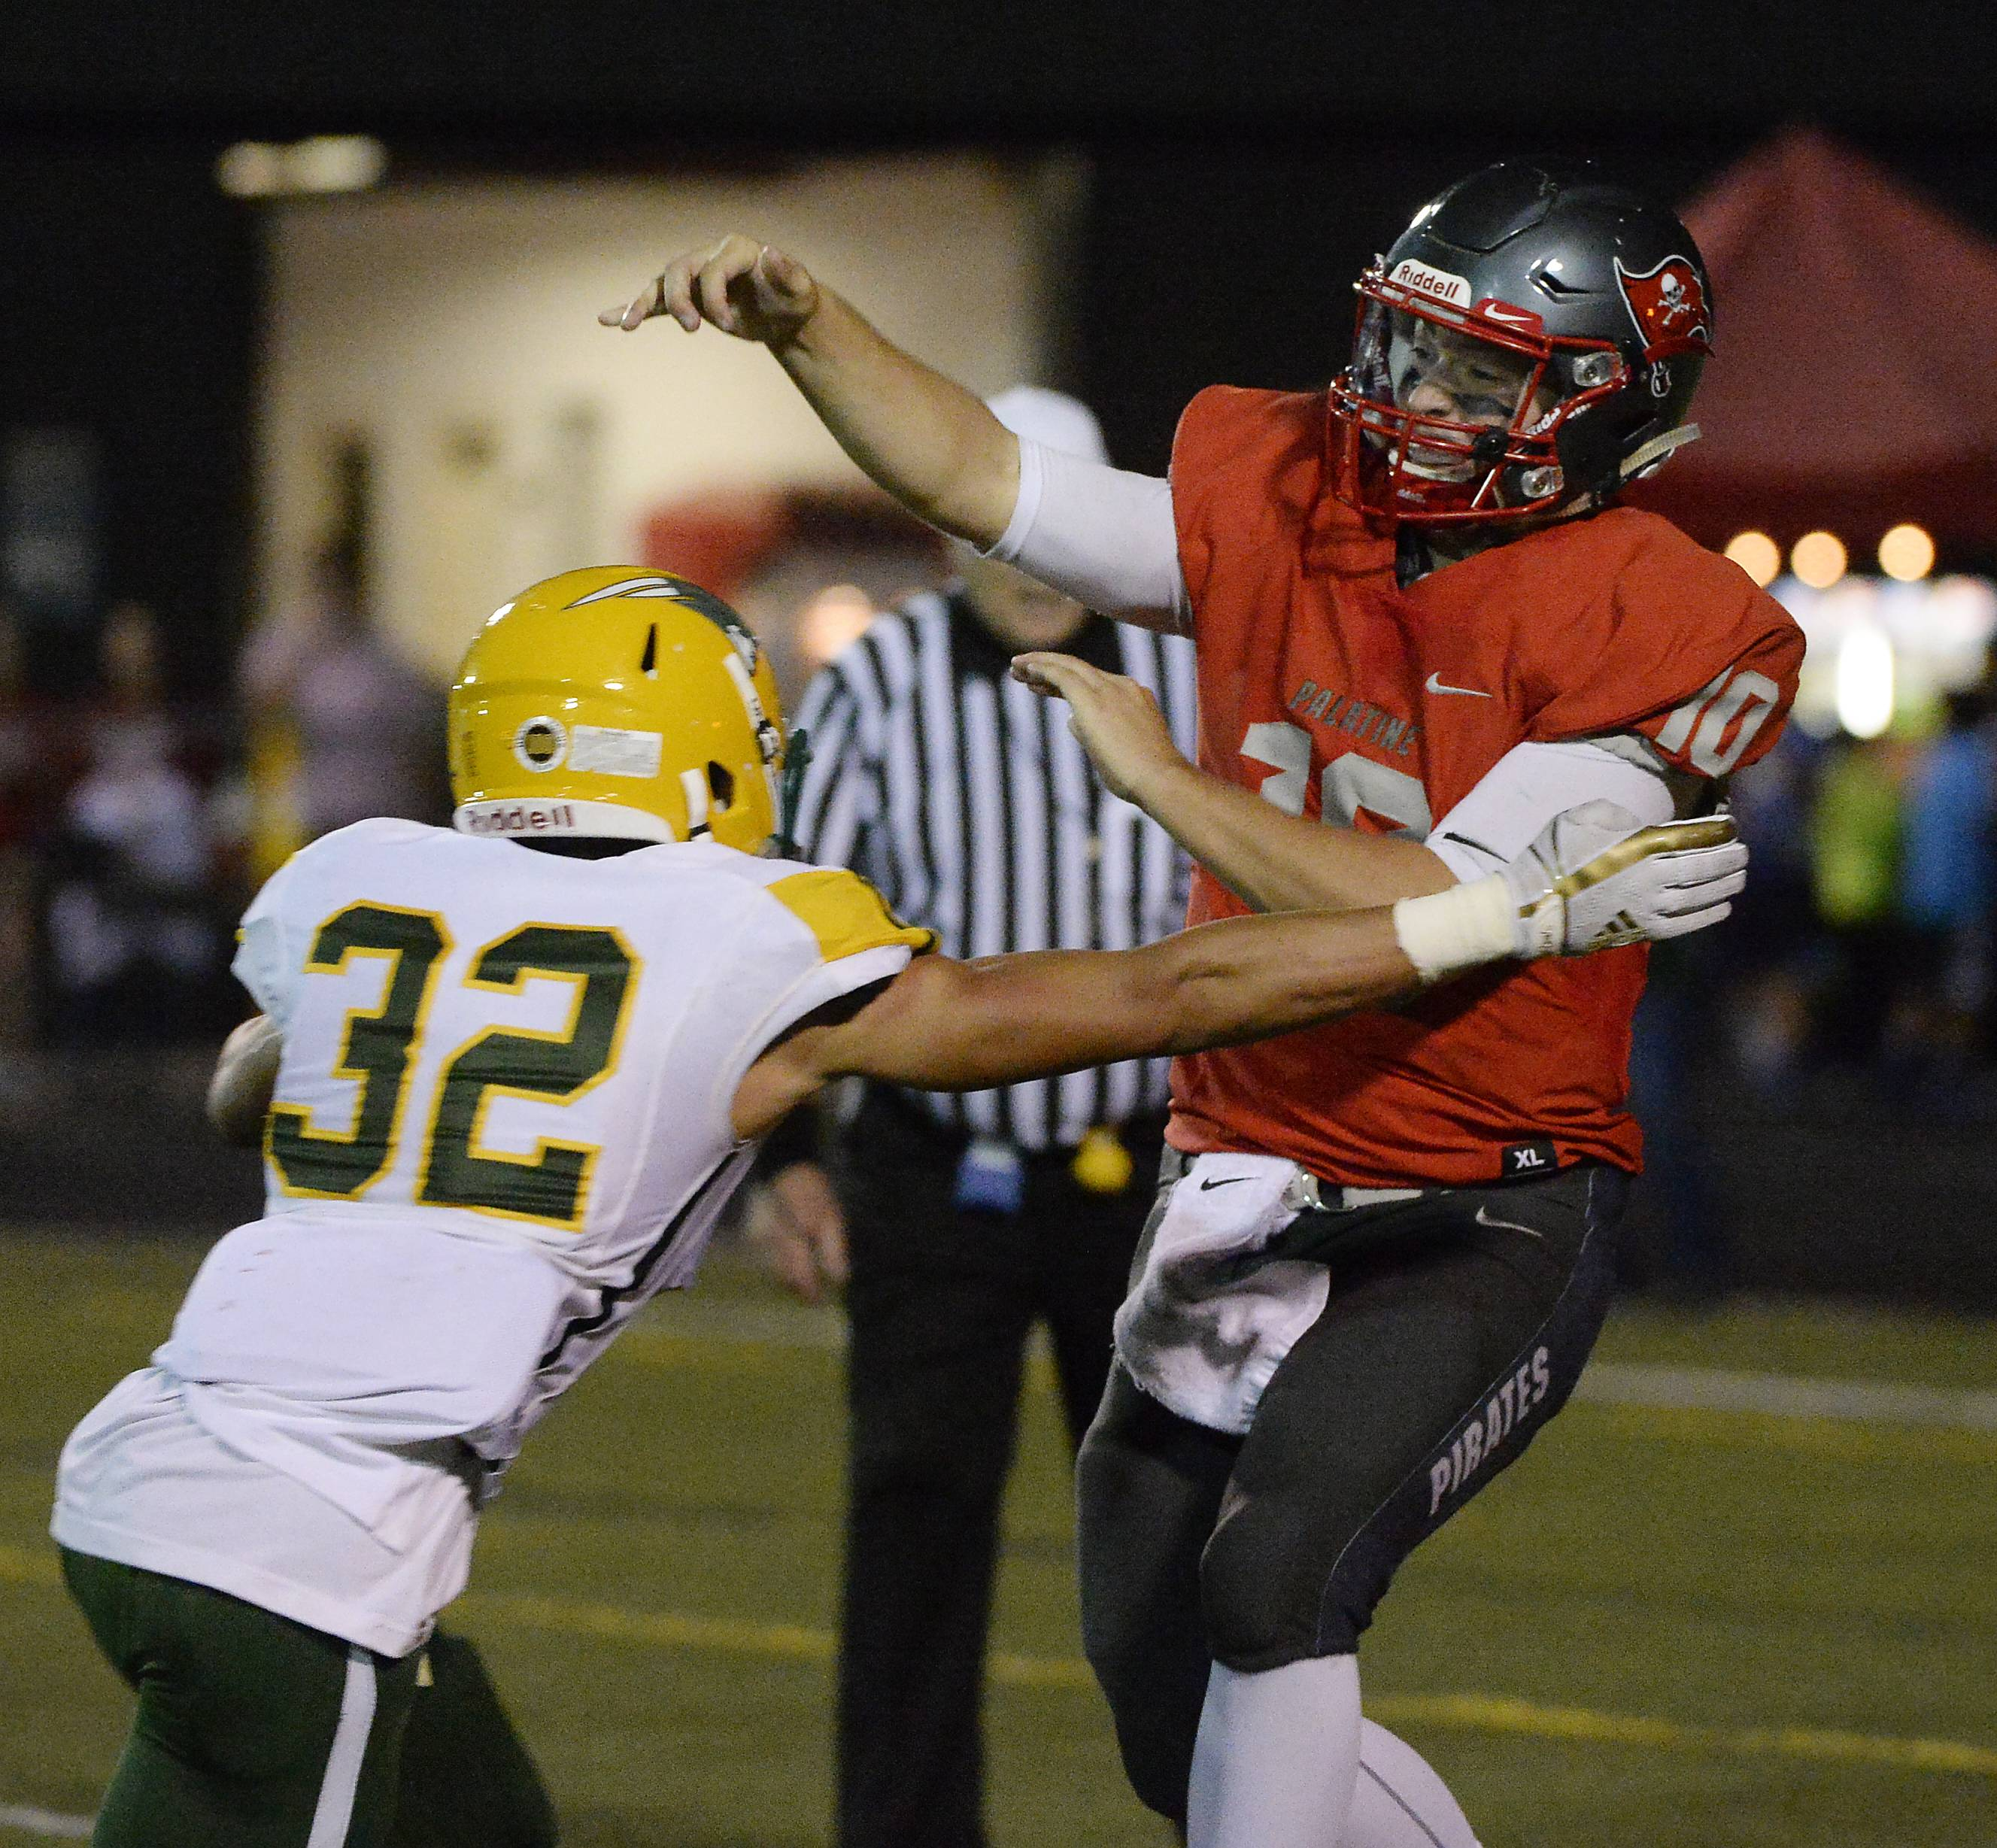 Stevenson's Jordan Vincent applies pressure to Palatine quarterback DJ Angelaccio as he releases the ball on Friday at Palatine.